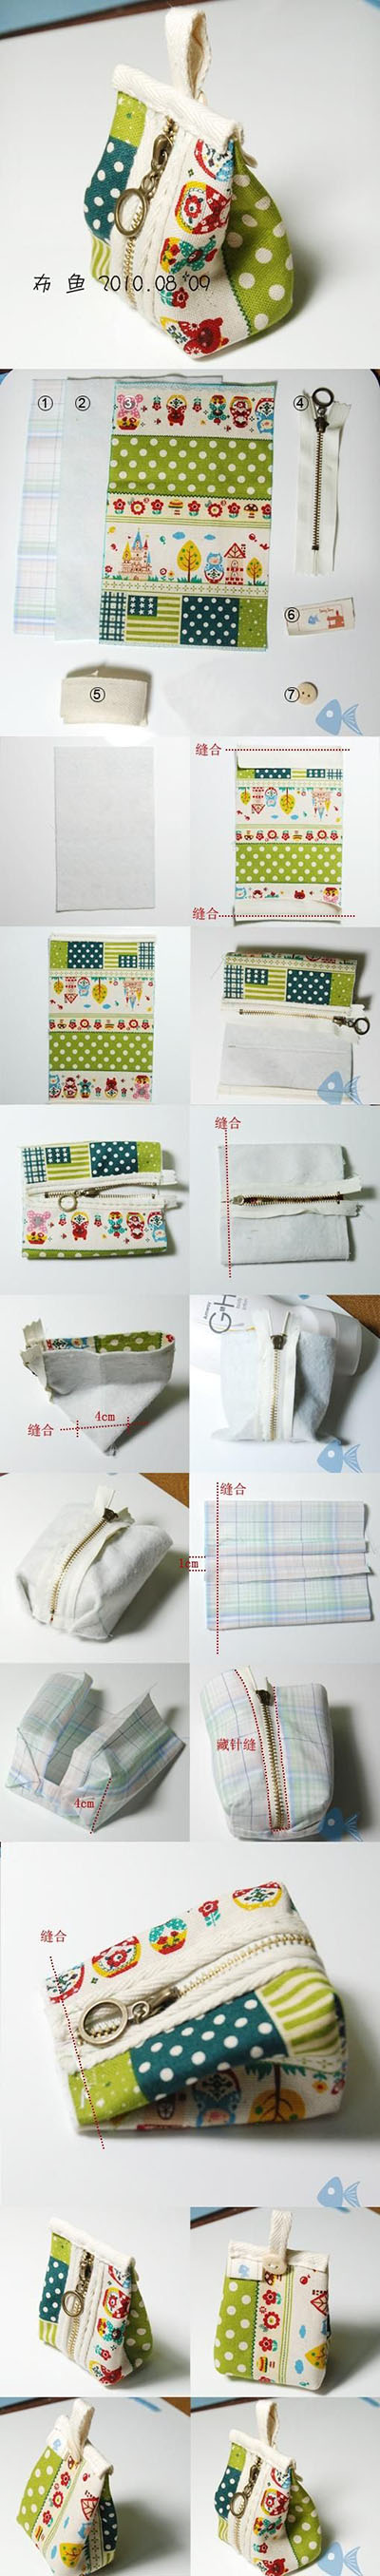 7 DIY Small Handbag DIY Small Handbag 8b9e031